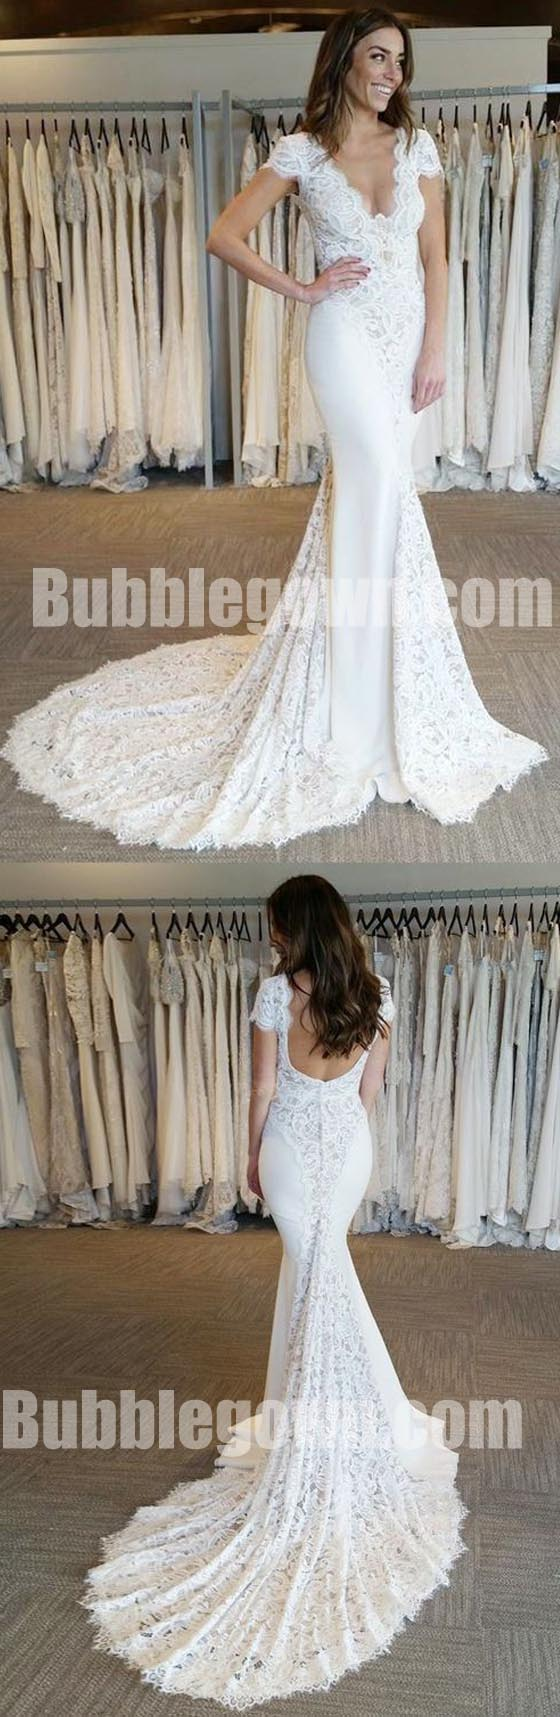 Cap Sleeves V Neck Lace Mermaid Elegant Long Wedding Dresses, BGW009